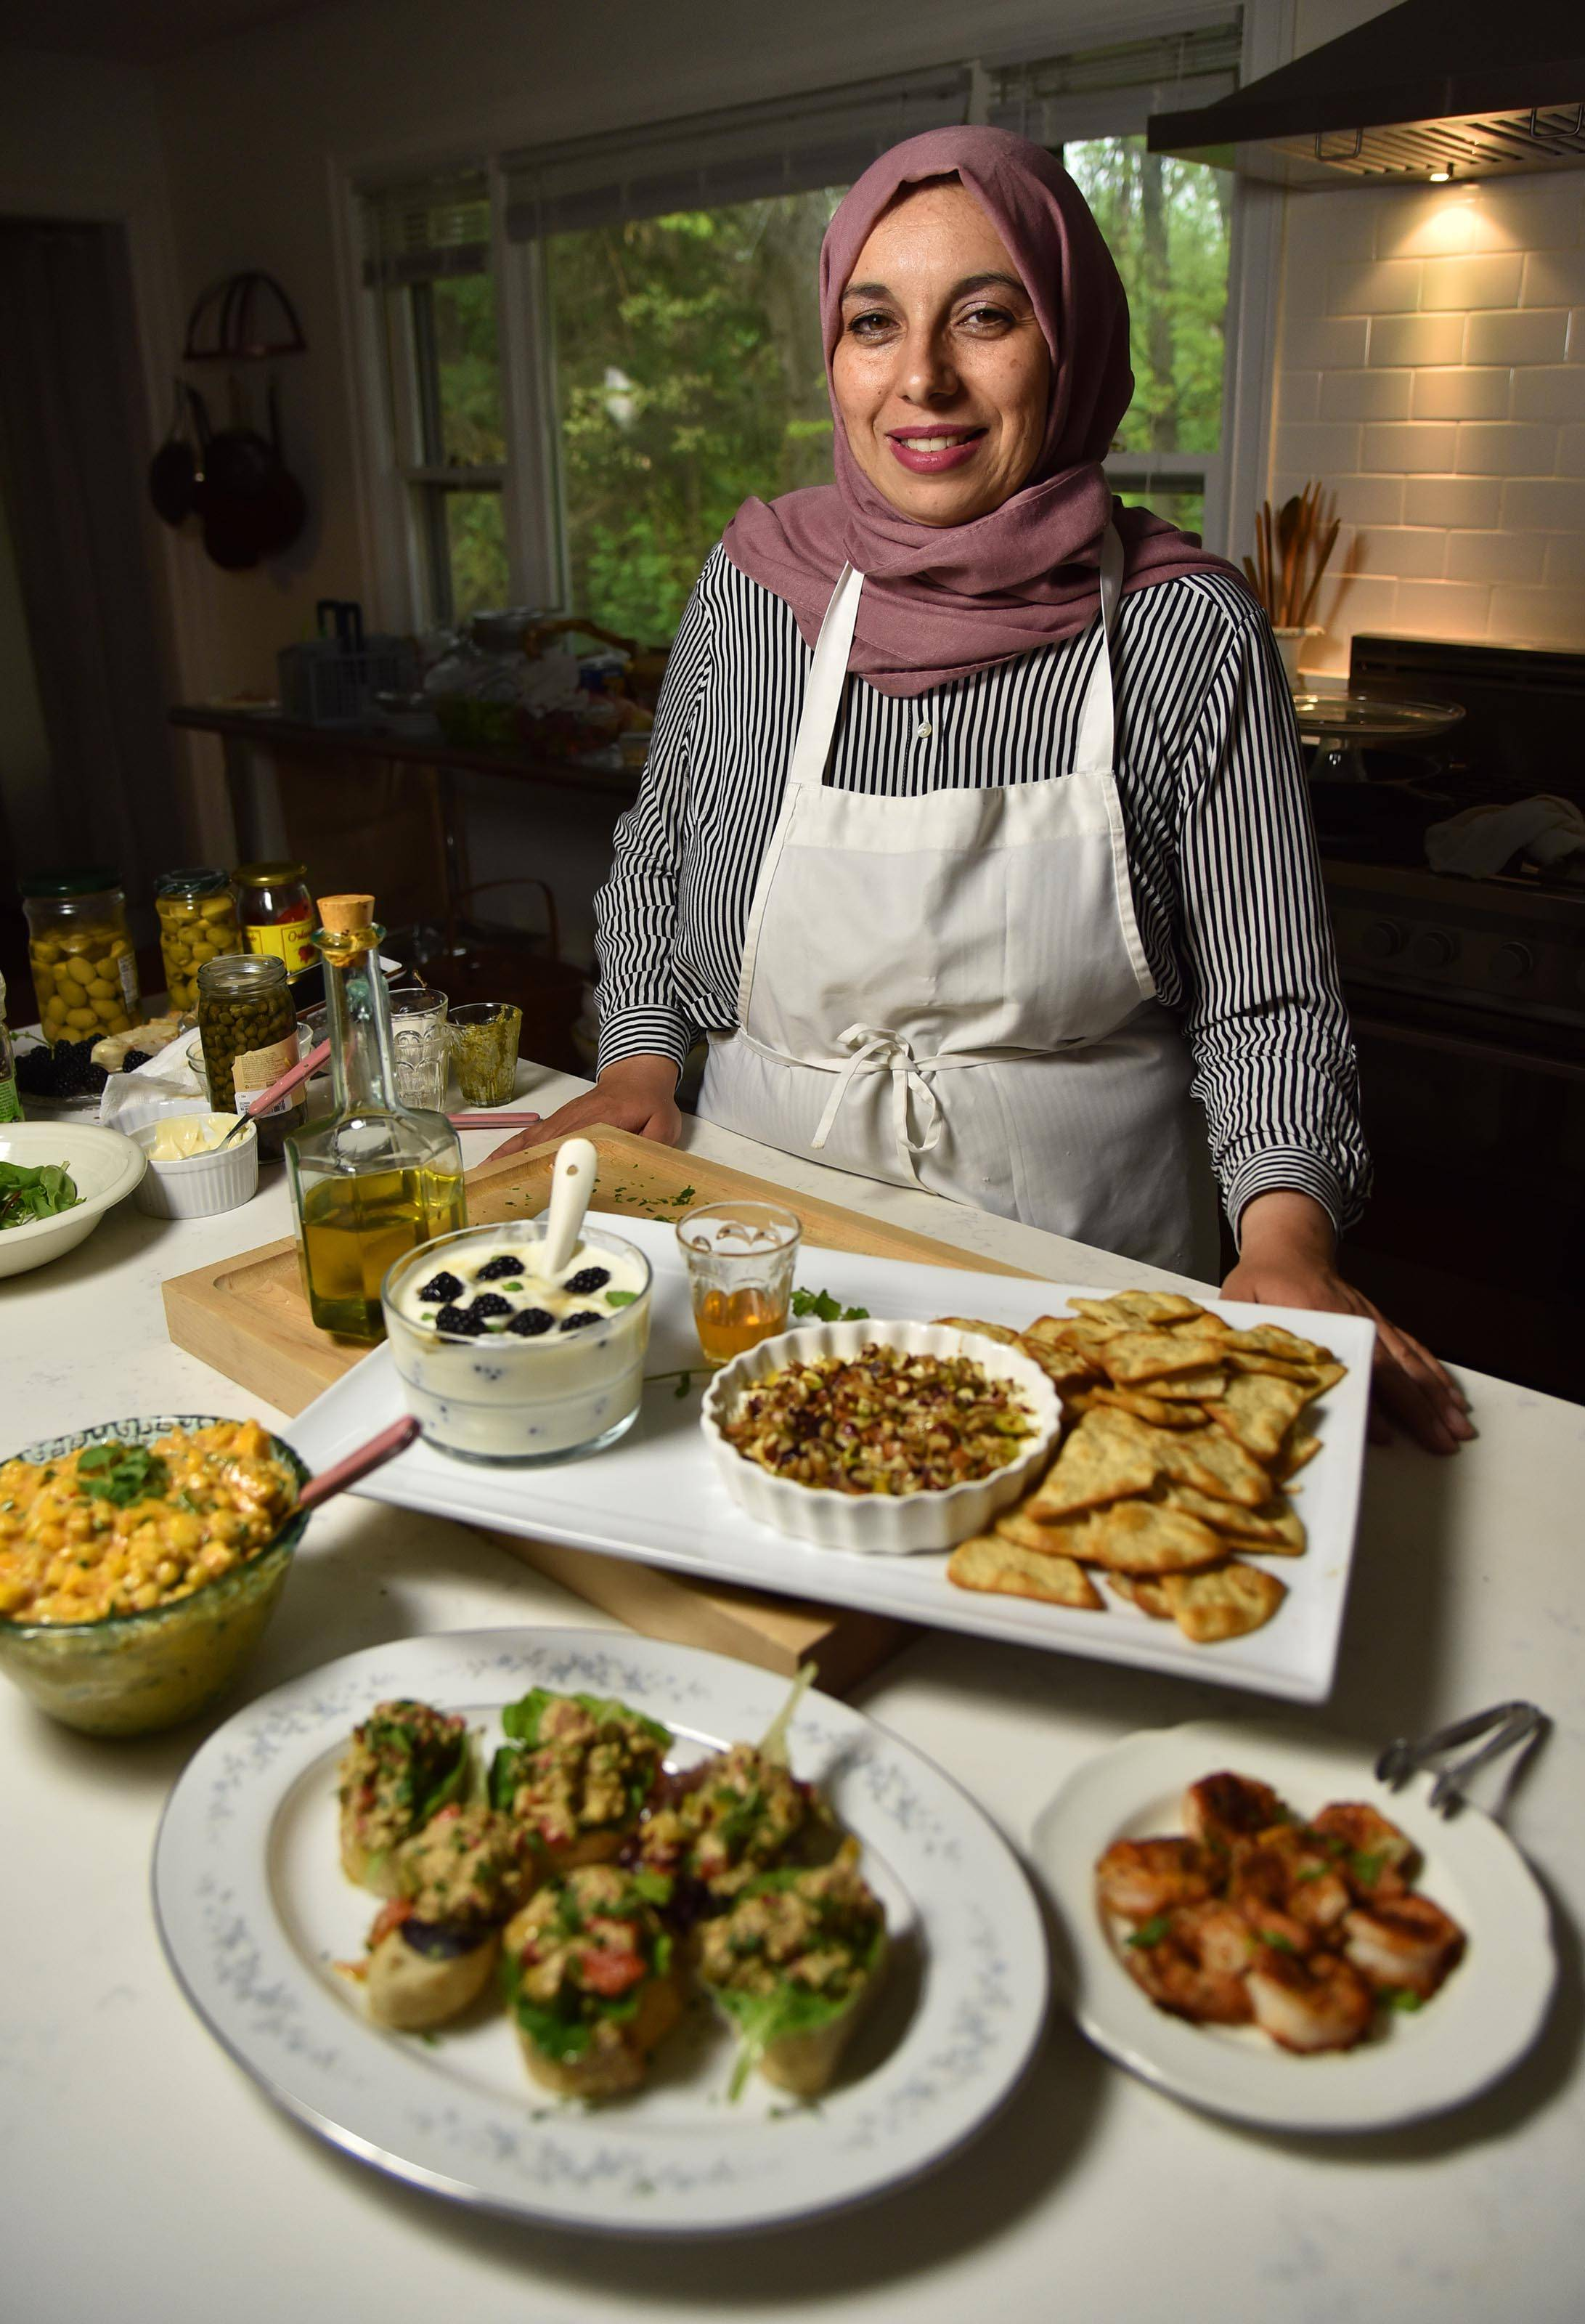 Suburban Muslims share what it means to fast for Ramadan